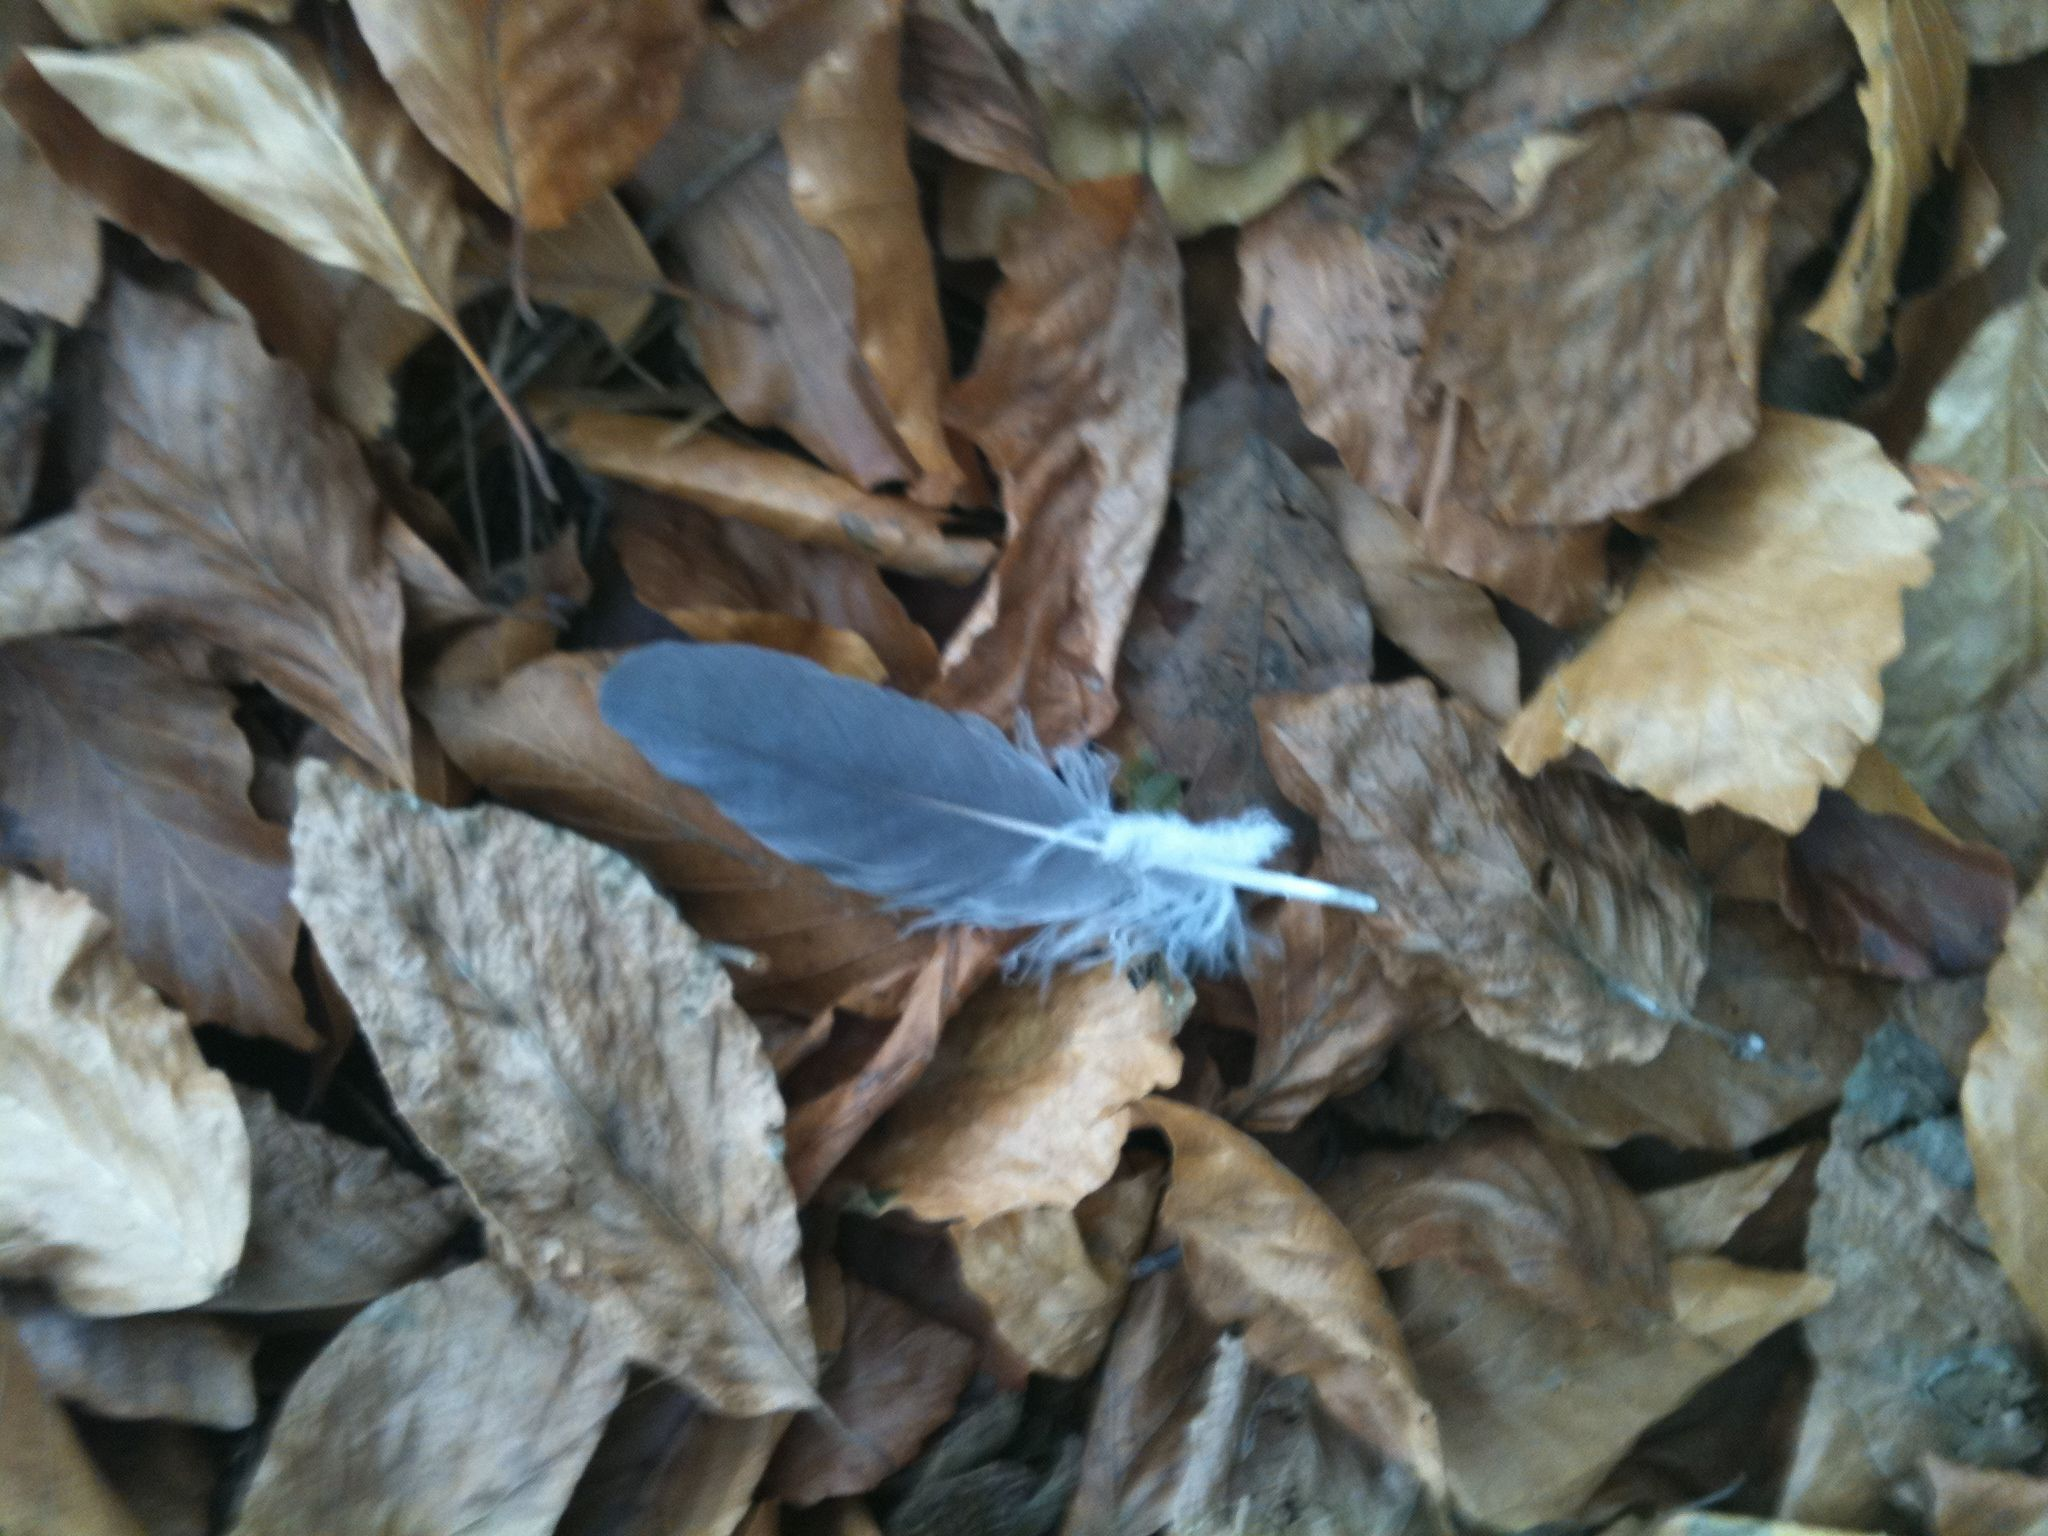 My blue feathered friend left me a gift....